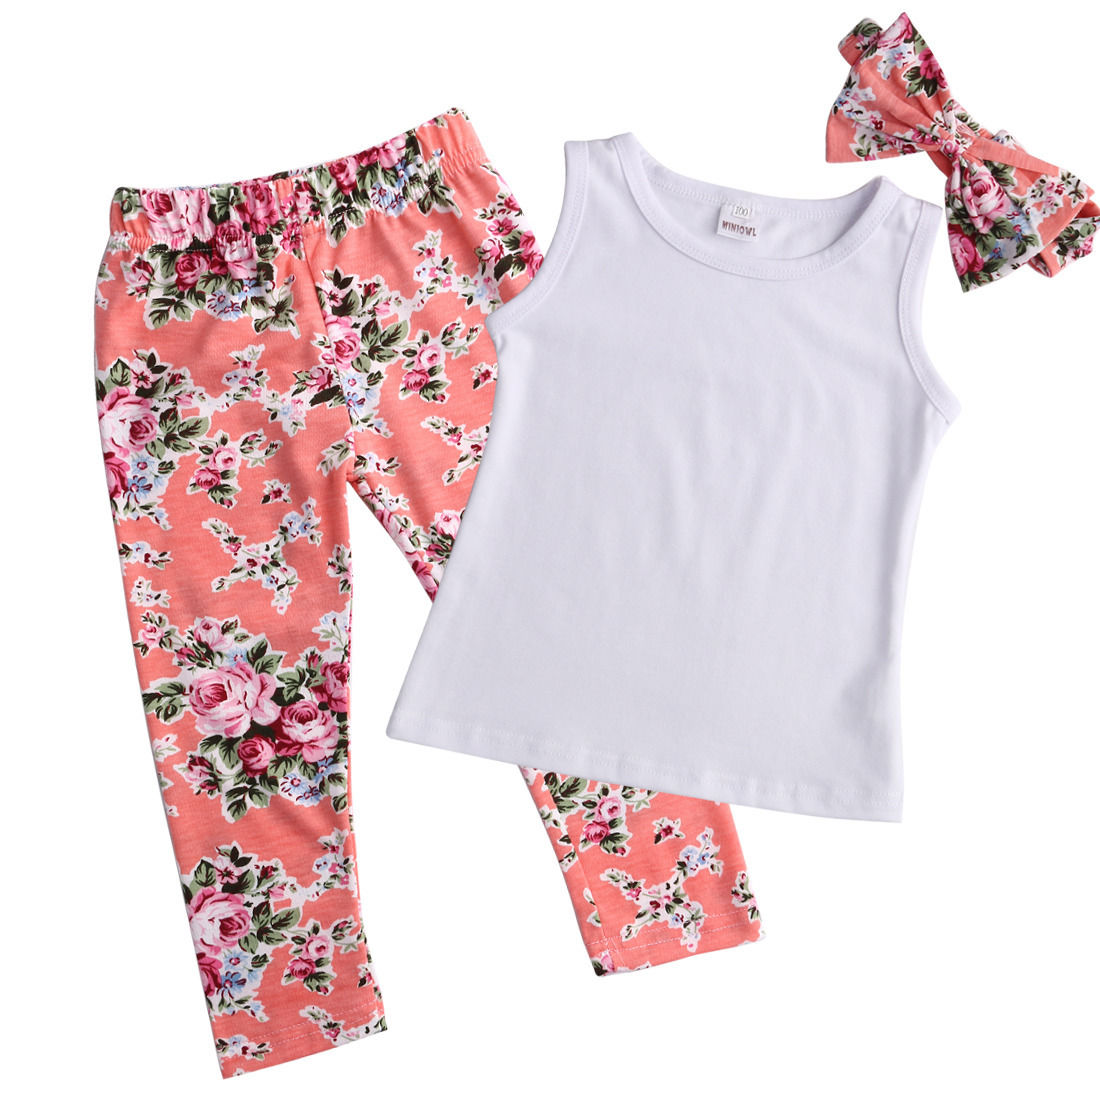 Floral Kids Baby Girls Clothes Tops T-shirt +Pants +Hairband Outfit 3Pcs Set kids clothing sets summer gift infant toddler kids baby girls summer outfit cotton striped sleeveless tops dress floral short pants girls clothes sunsuit 0 4y